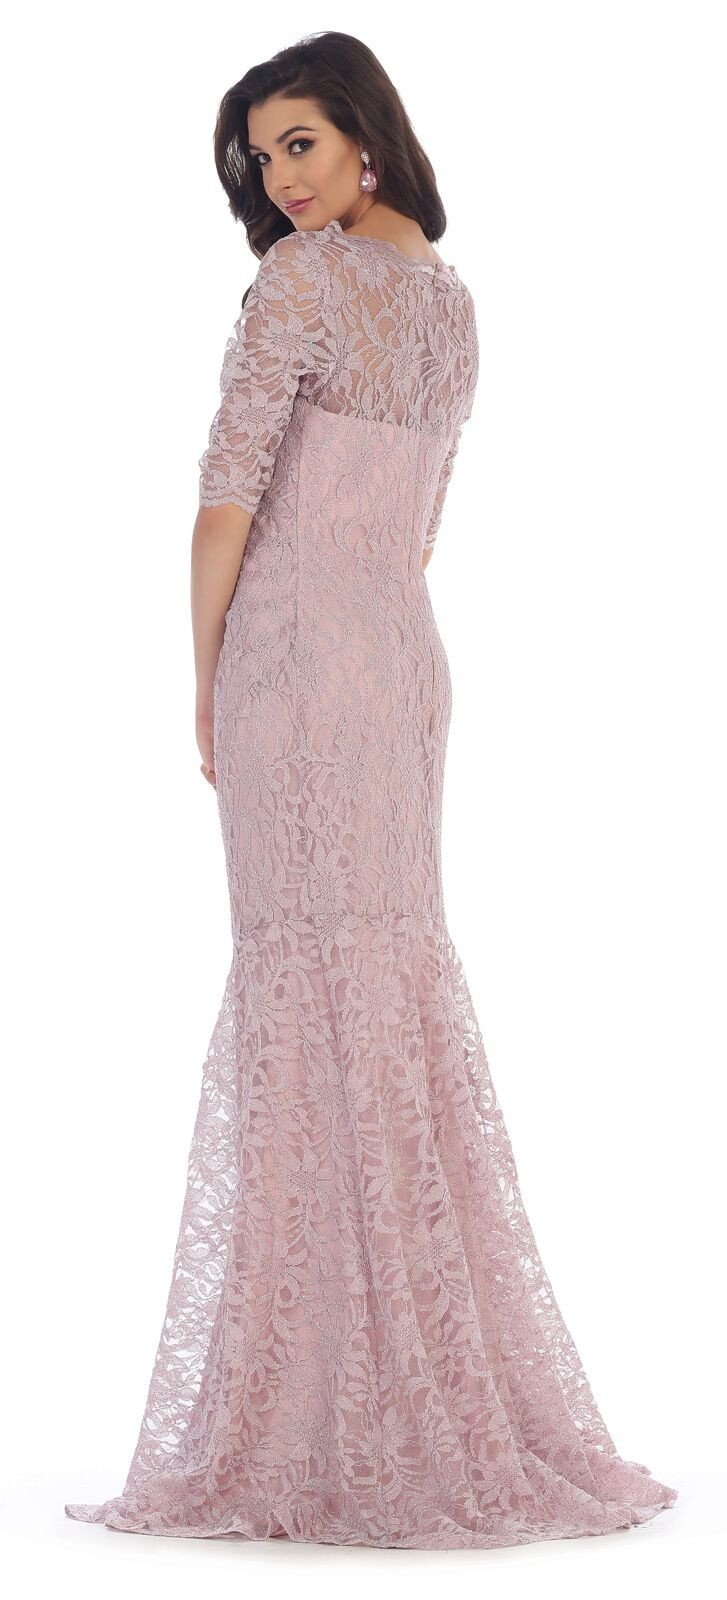 This Stunning Floor Length Dress Features 3 4 Sleeve With Sweetheart Neckline And Lace Material Perfe Mermaid Evening Dresses Dresses Plus Size Formal Dresses [ 1600 x 727 Pixel ]